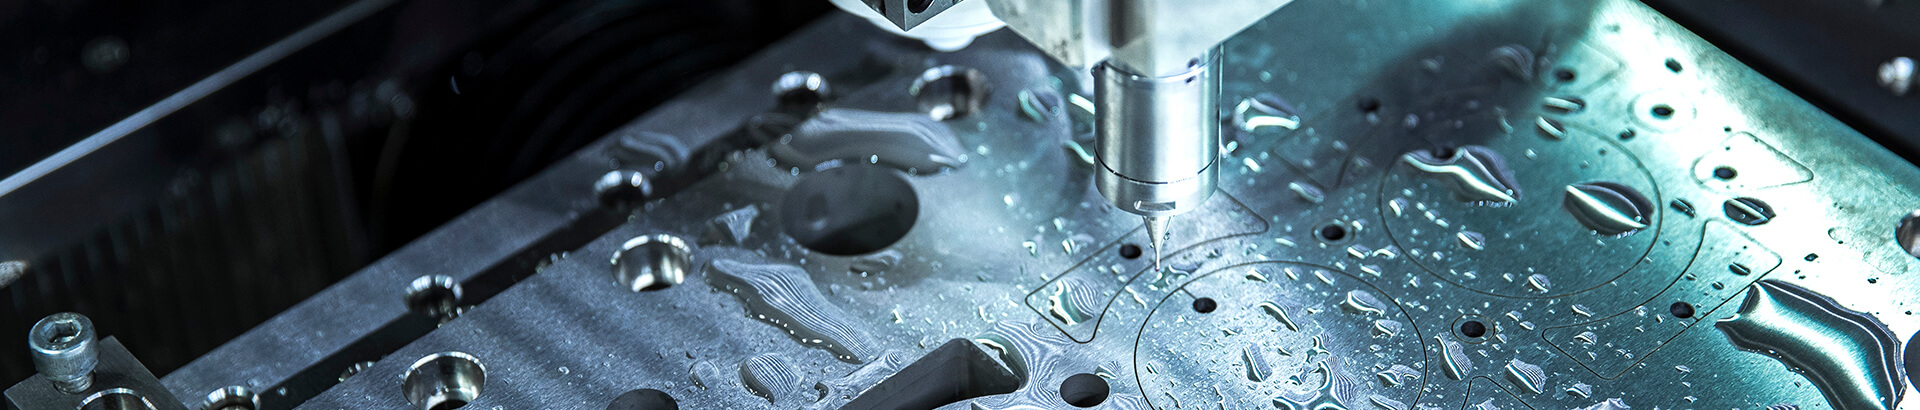 Import and Export Analysis of Taiwan's Machine Tools in 2019